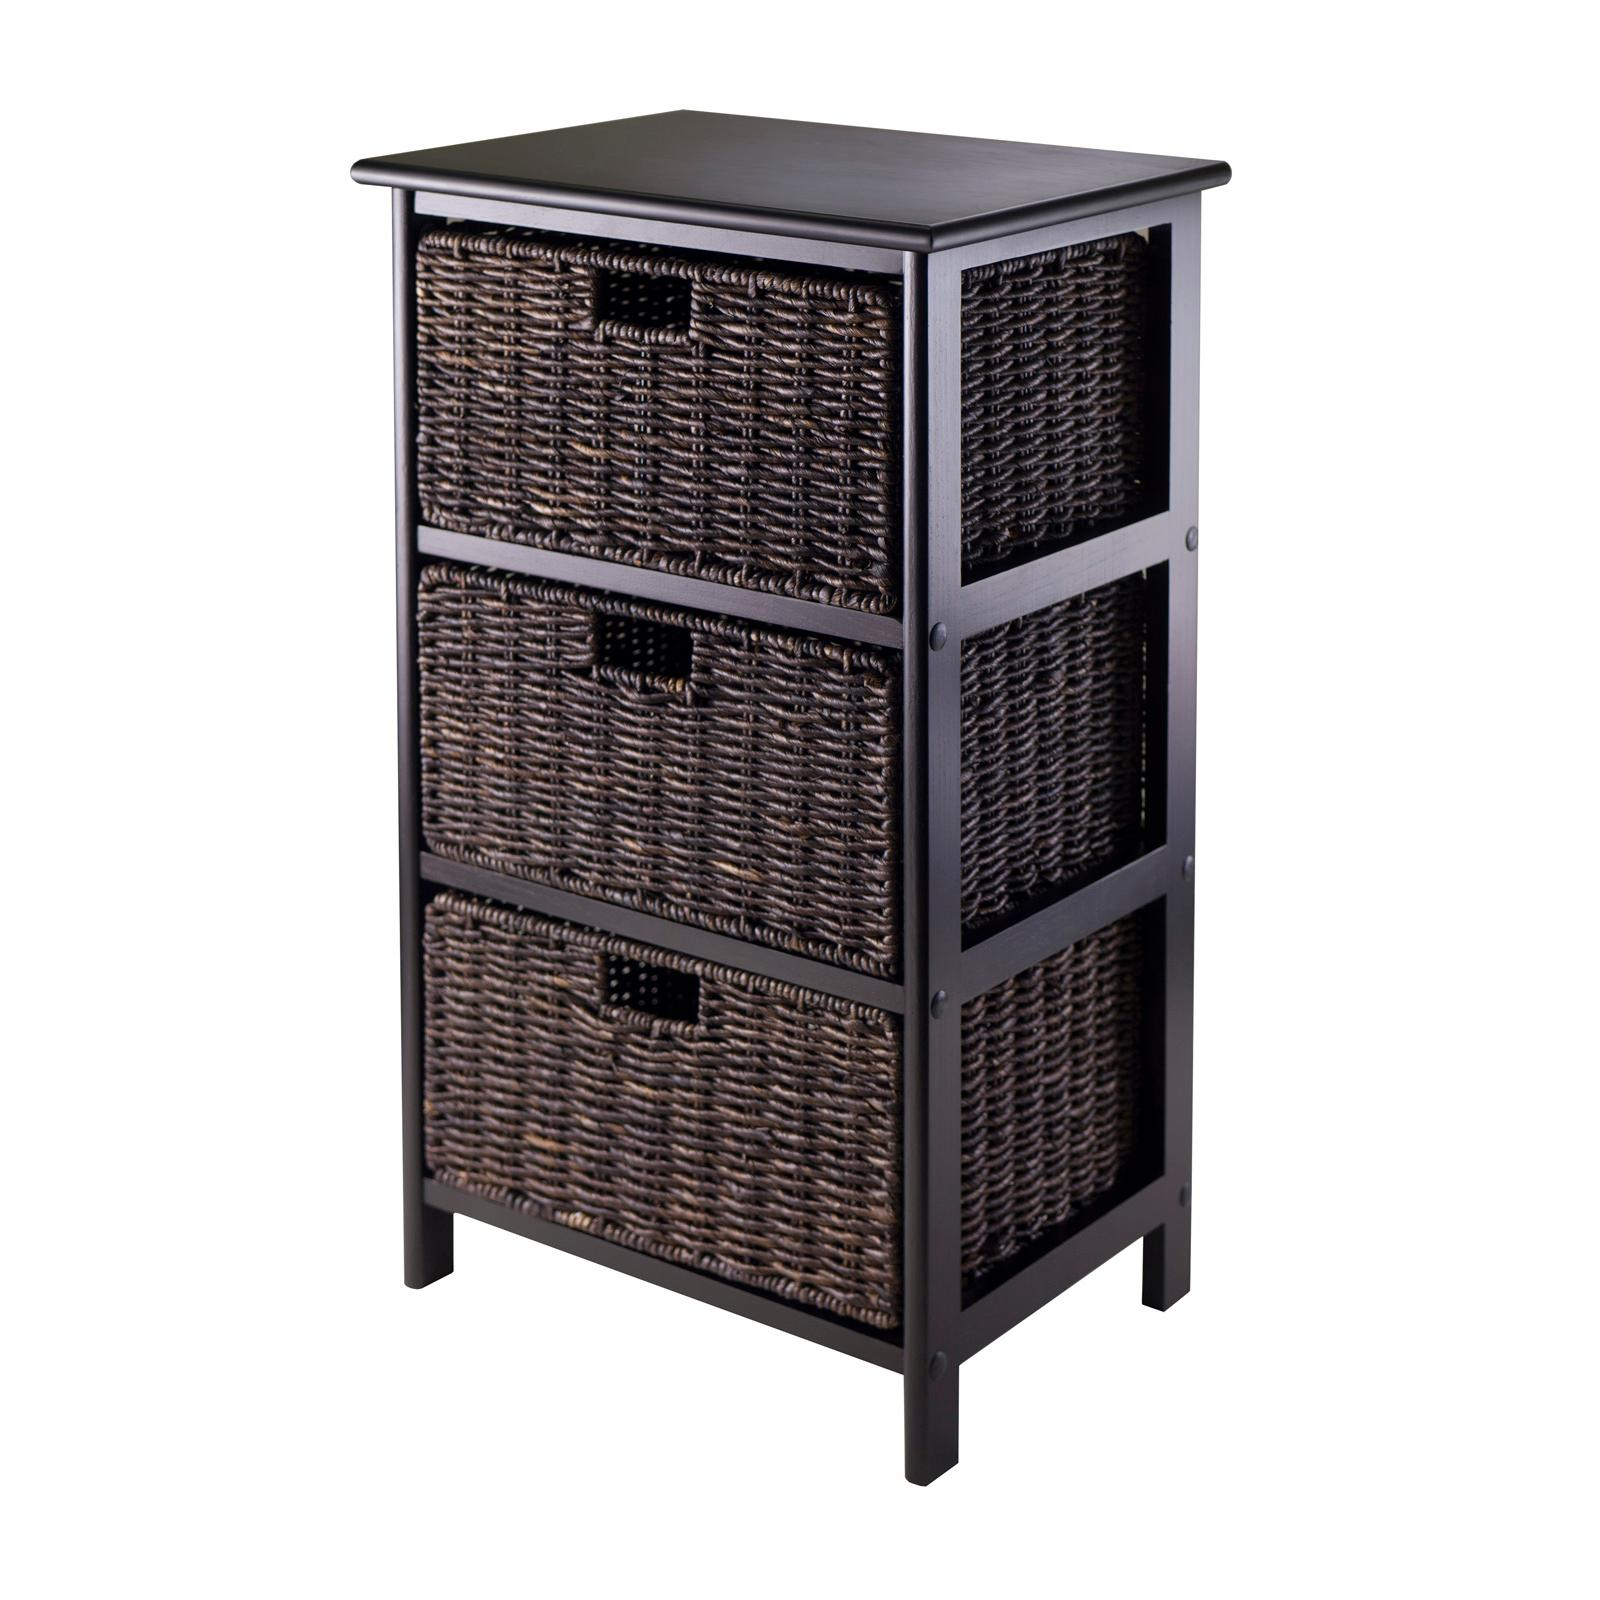 Excellent Amazon.com - Winsome Omaha Storage Rack with 3-Foldable Basket  LU97